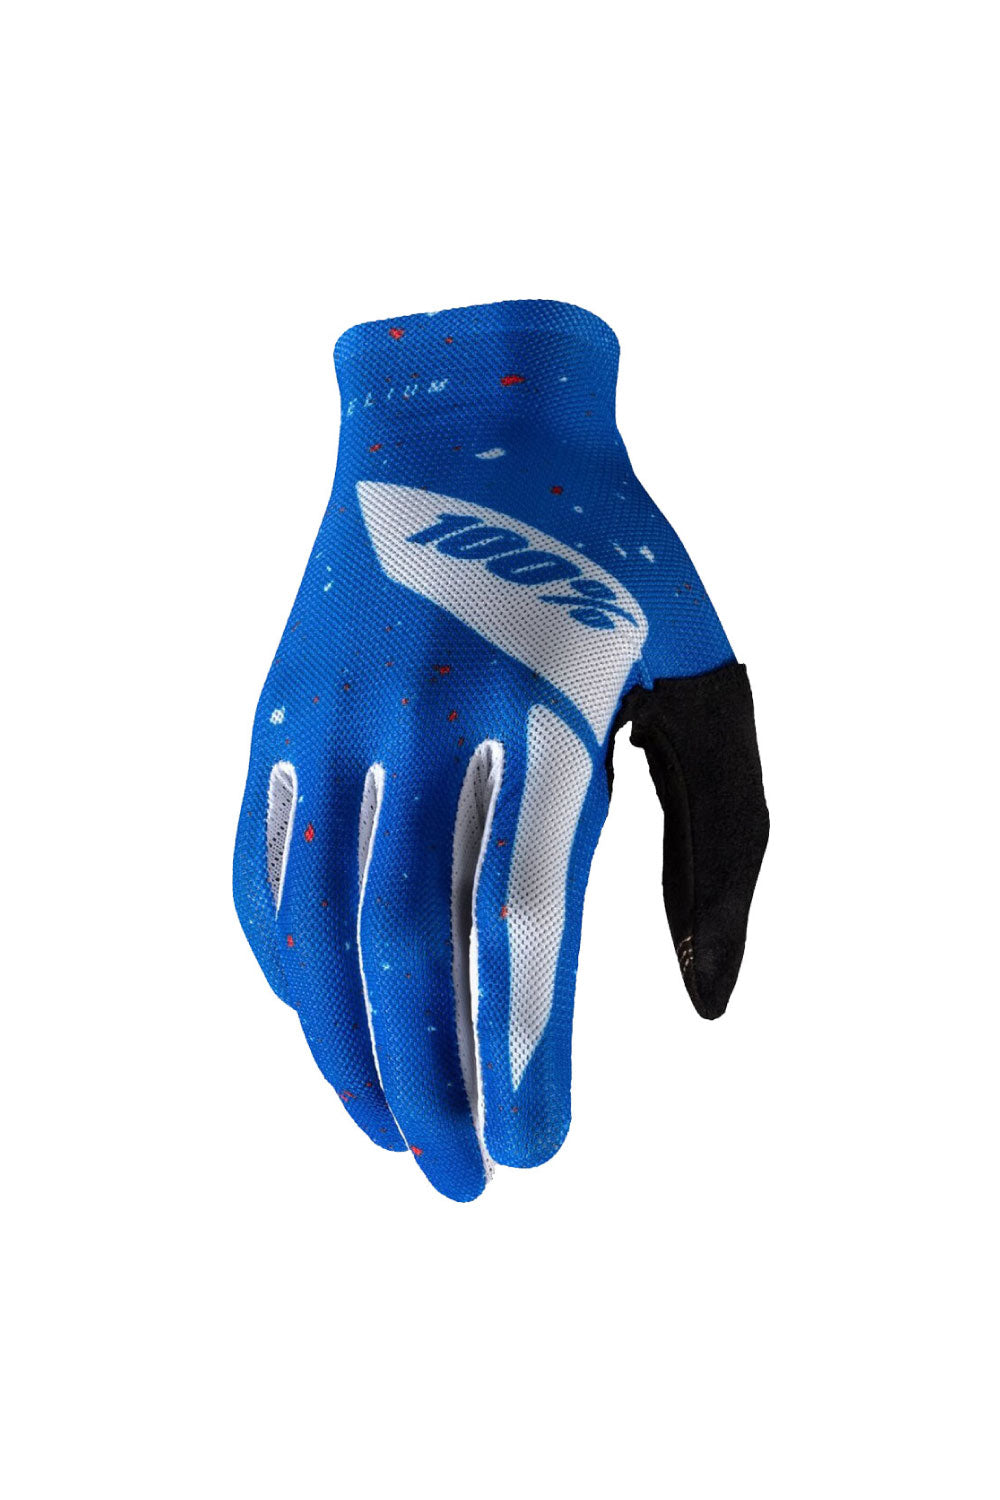 100% Percent Celium MTB Bike Gloves